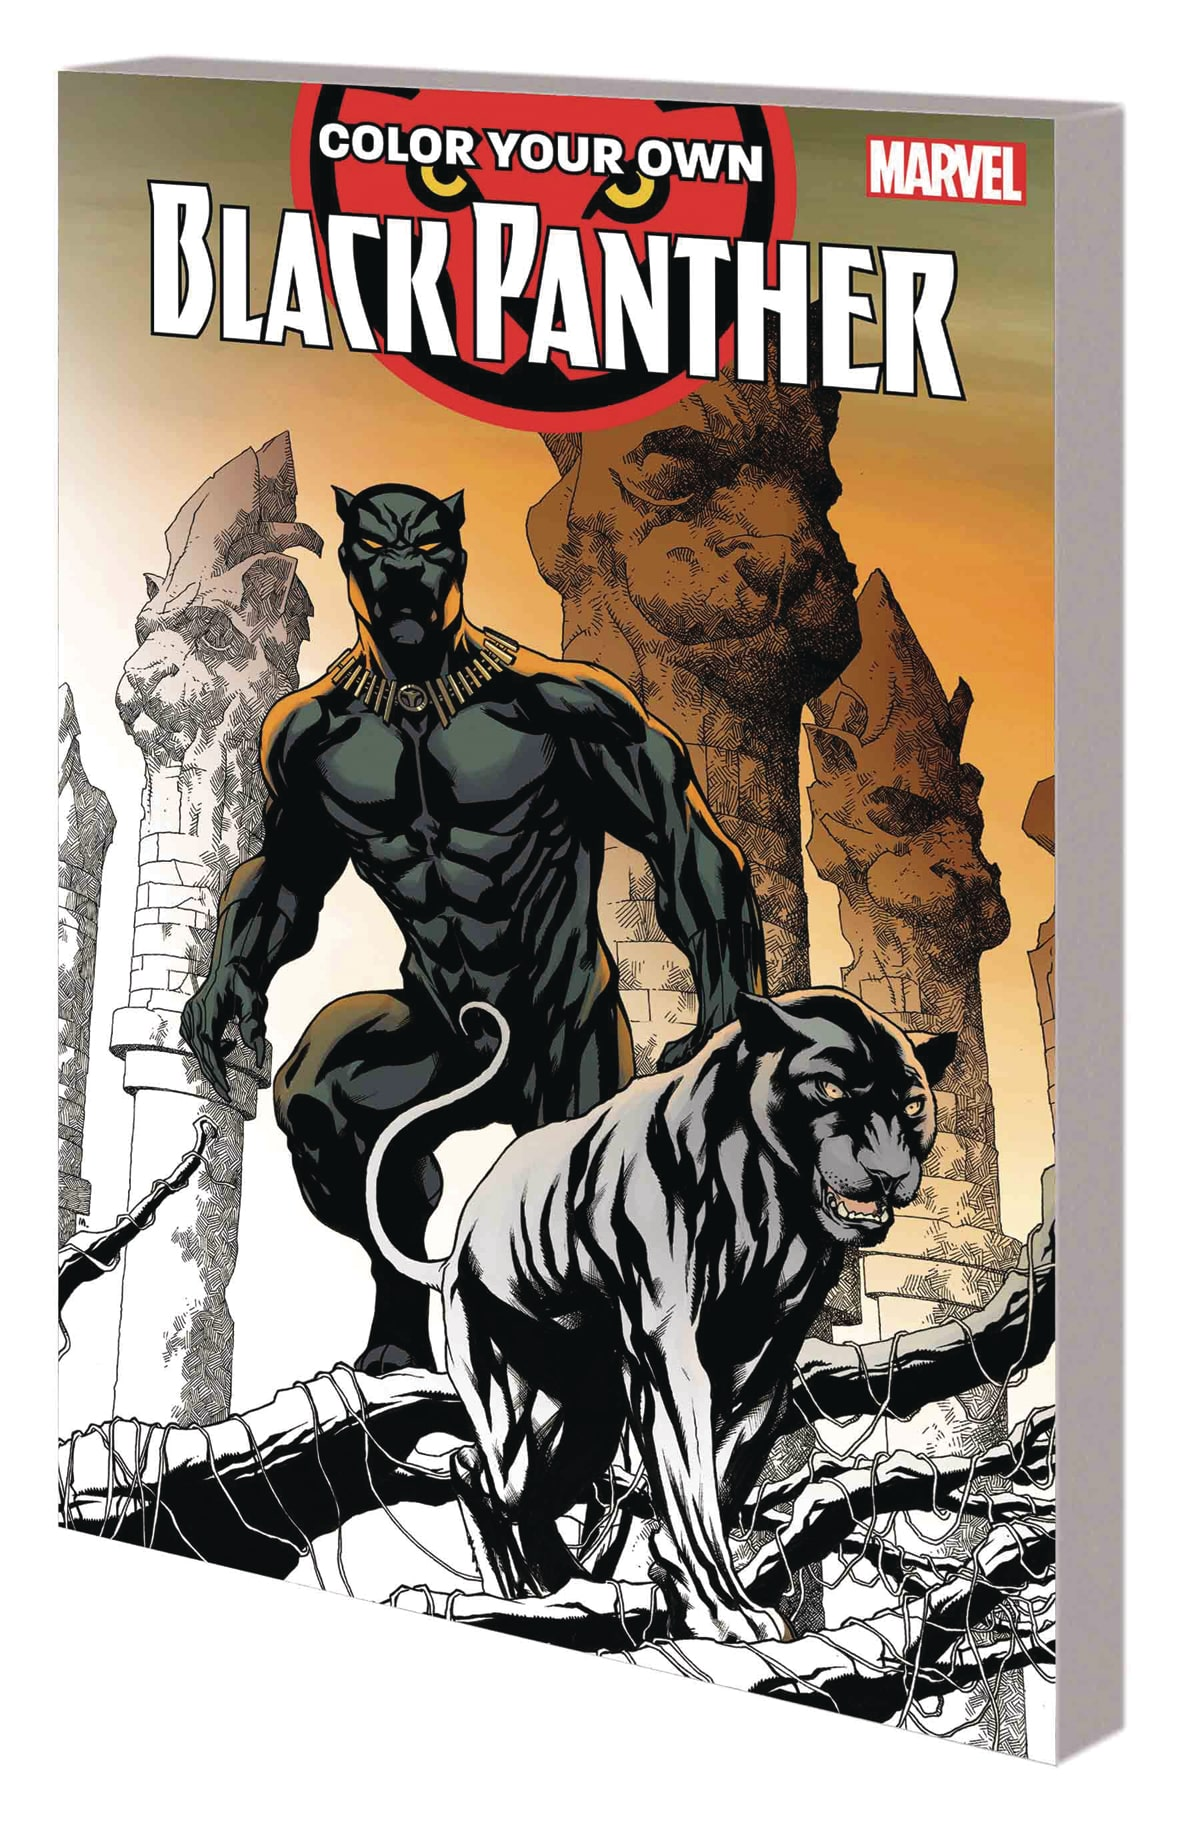 Color Your Own Black Panther review